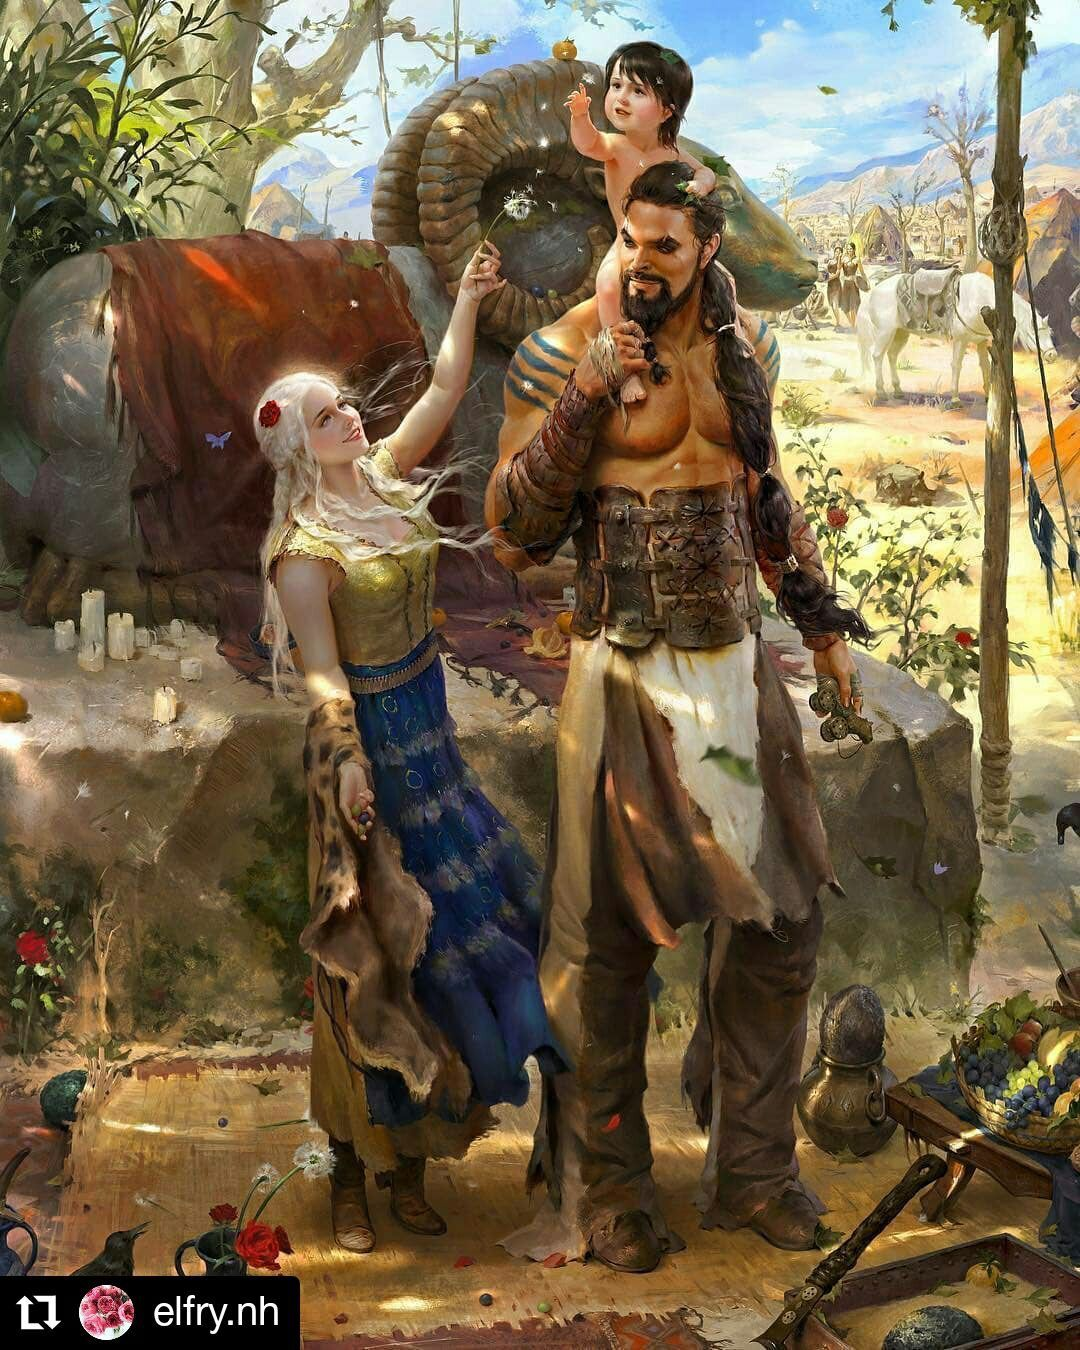 Daenerys And Khal With Their Son Game Of Thrones Character Art Game Of Thrones Artwork Game Of Thrones Art